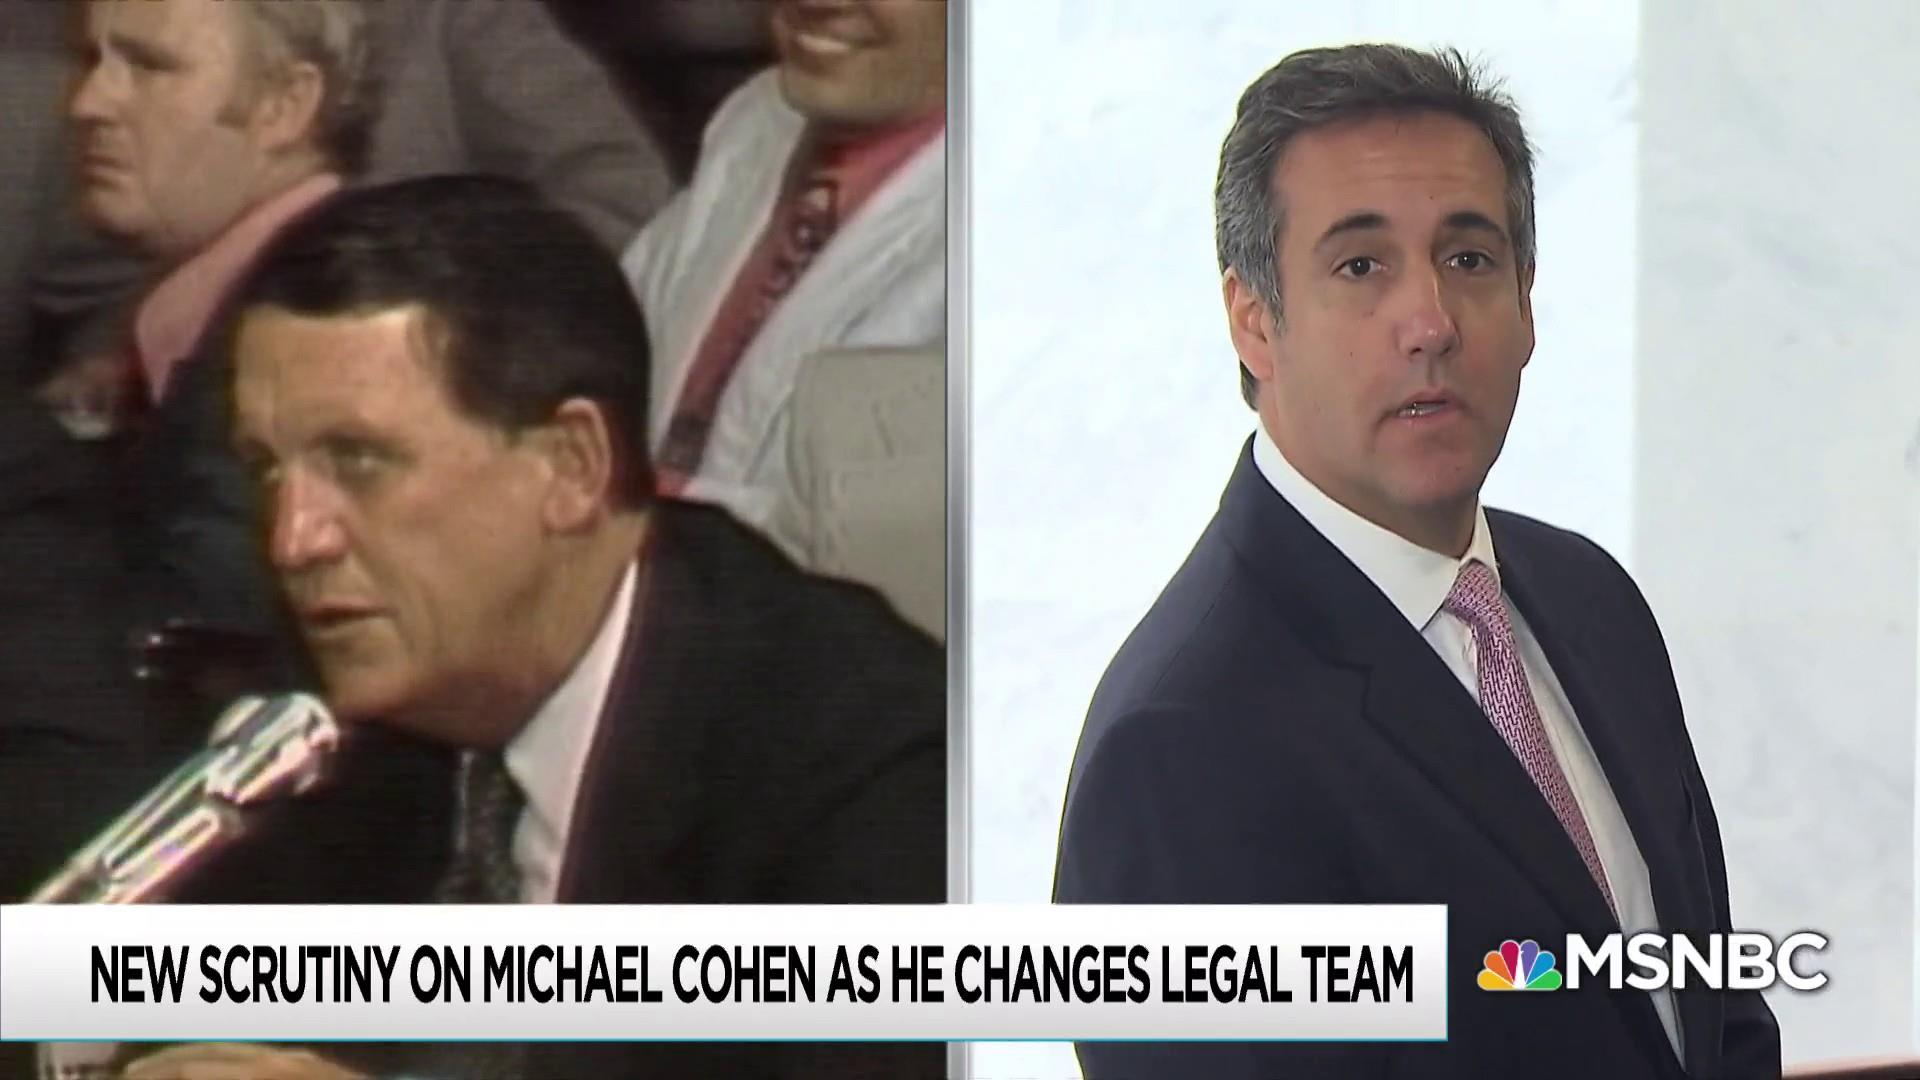 Nixon lawyer's prison time casts shadow over Michael Cohen